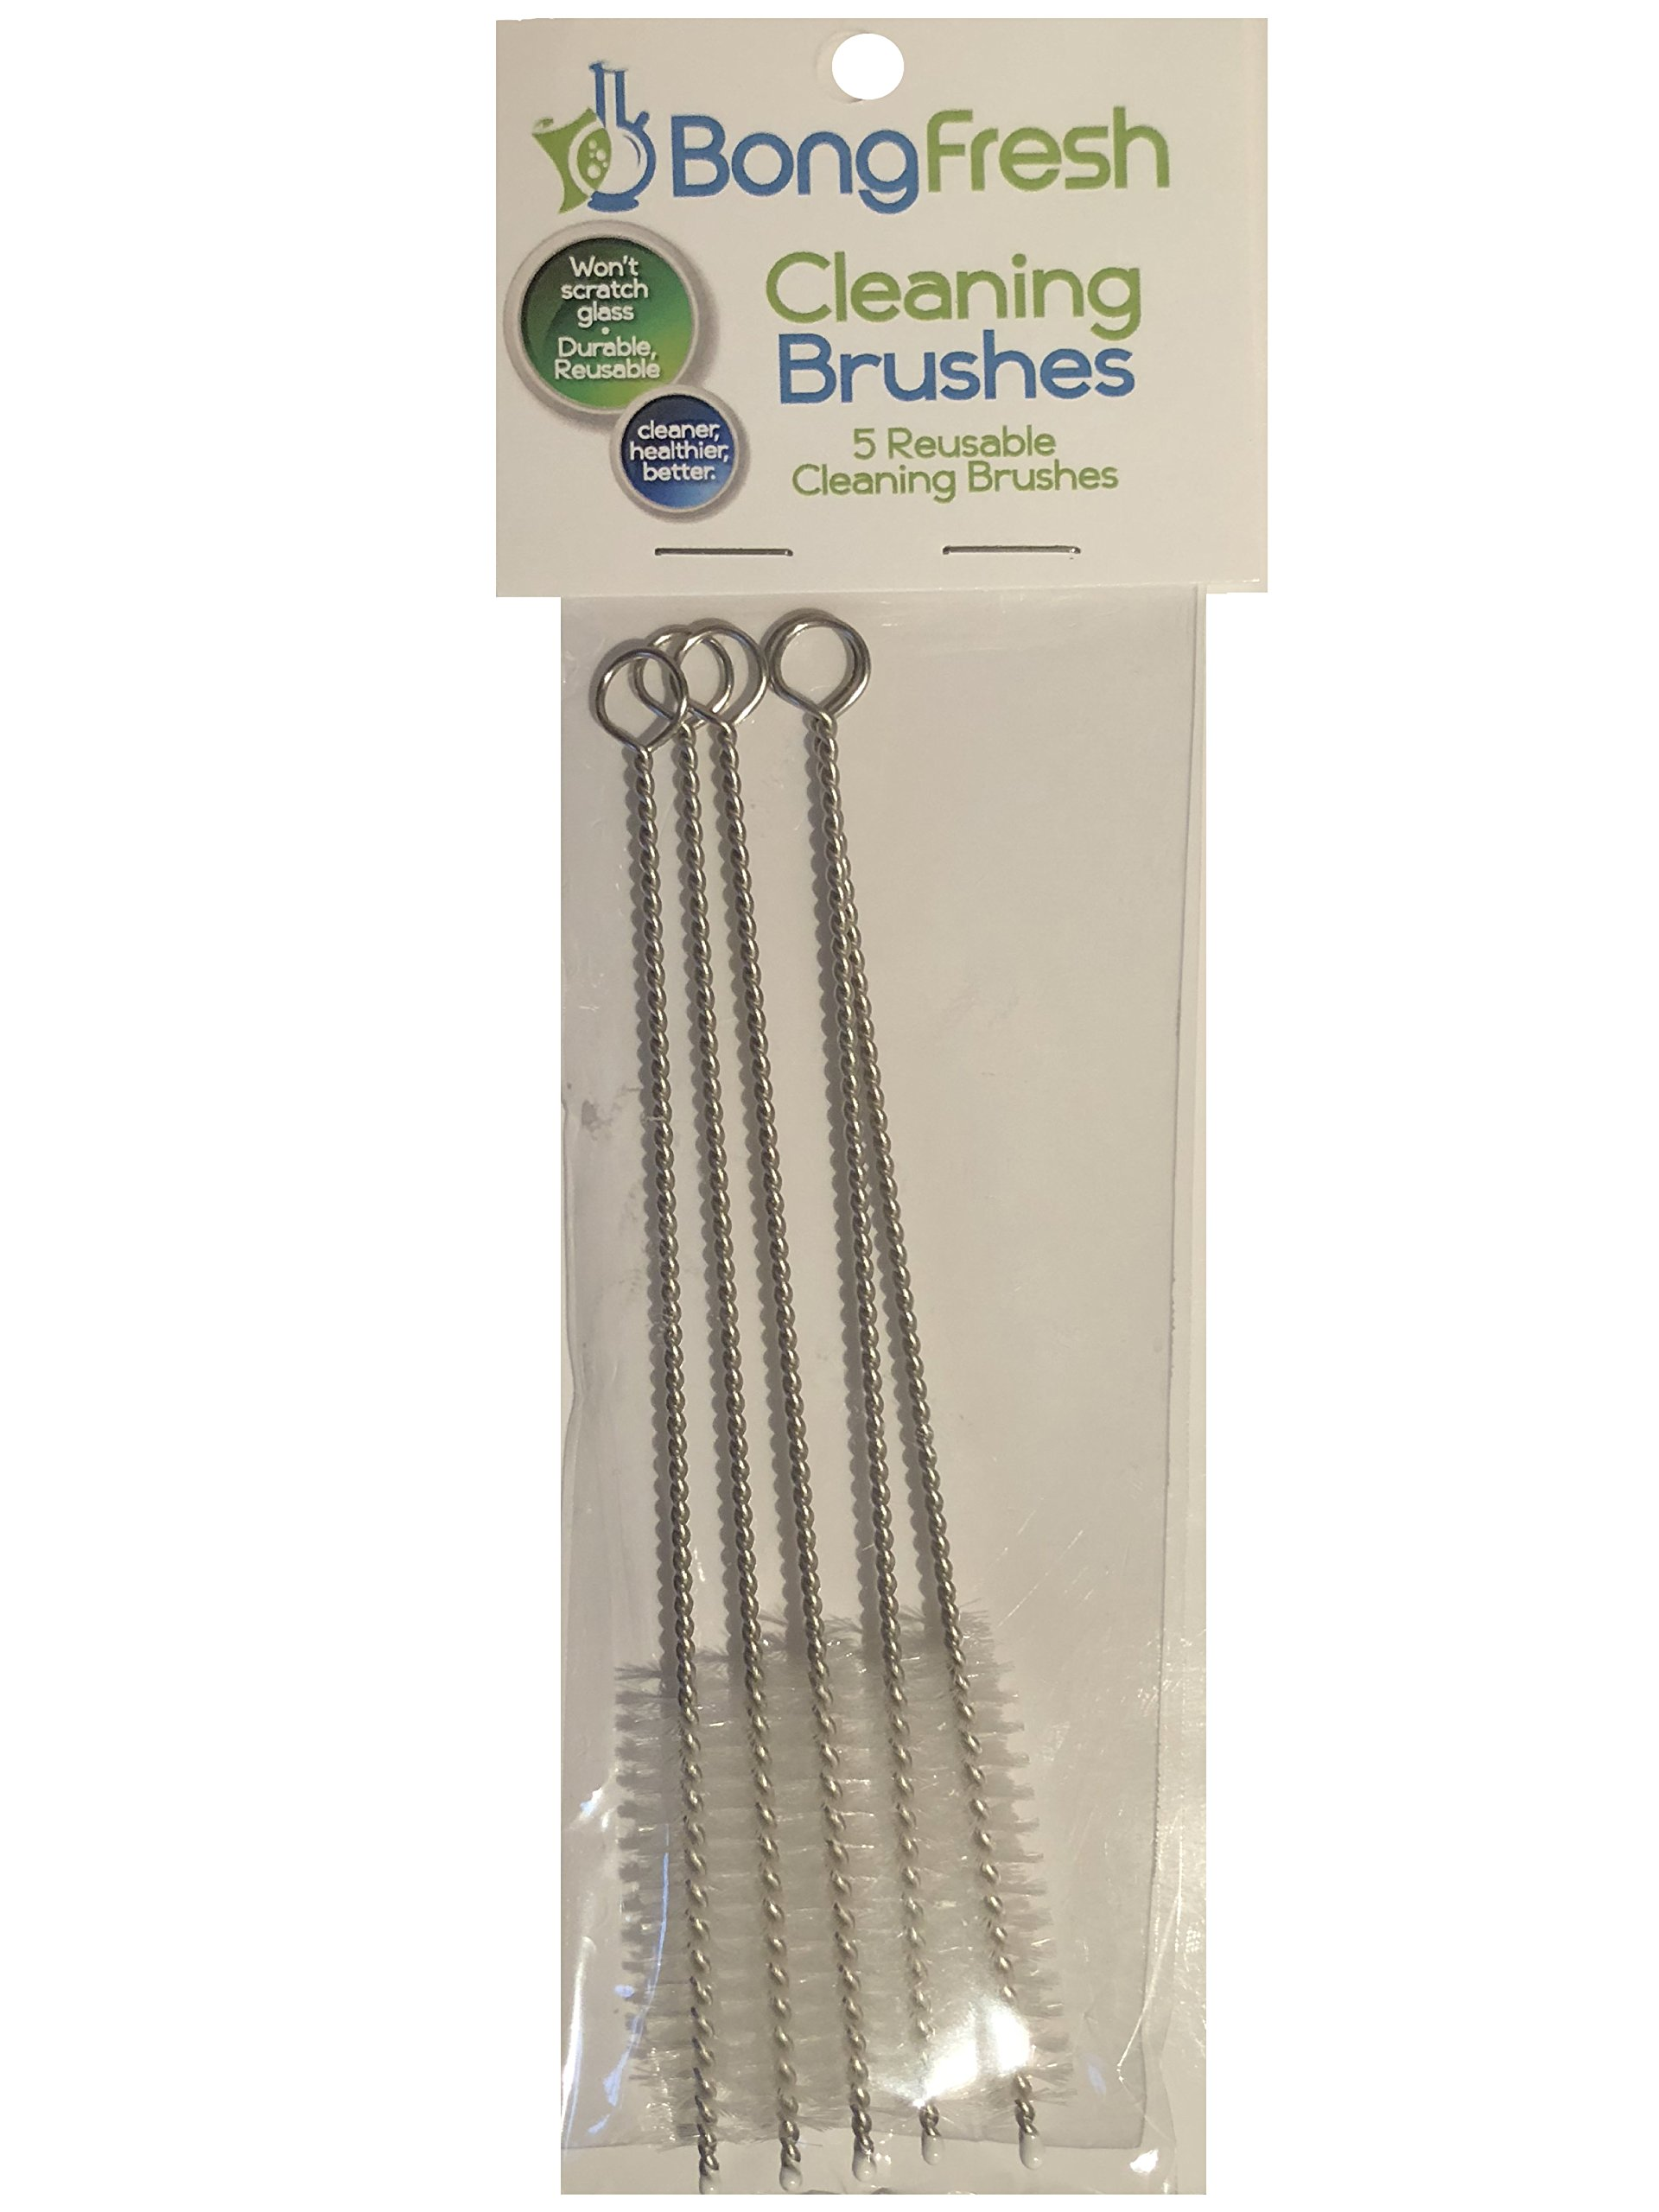 BongFresh - 5pk Reusable Cleaning Brushes™ (Bong Cleaner) Pipe Cleaners for down stems